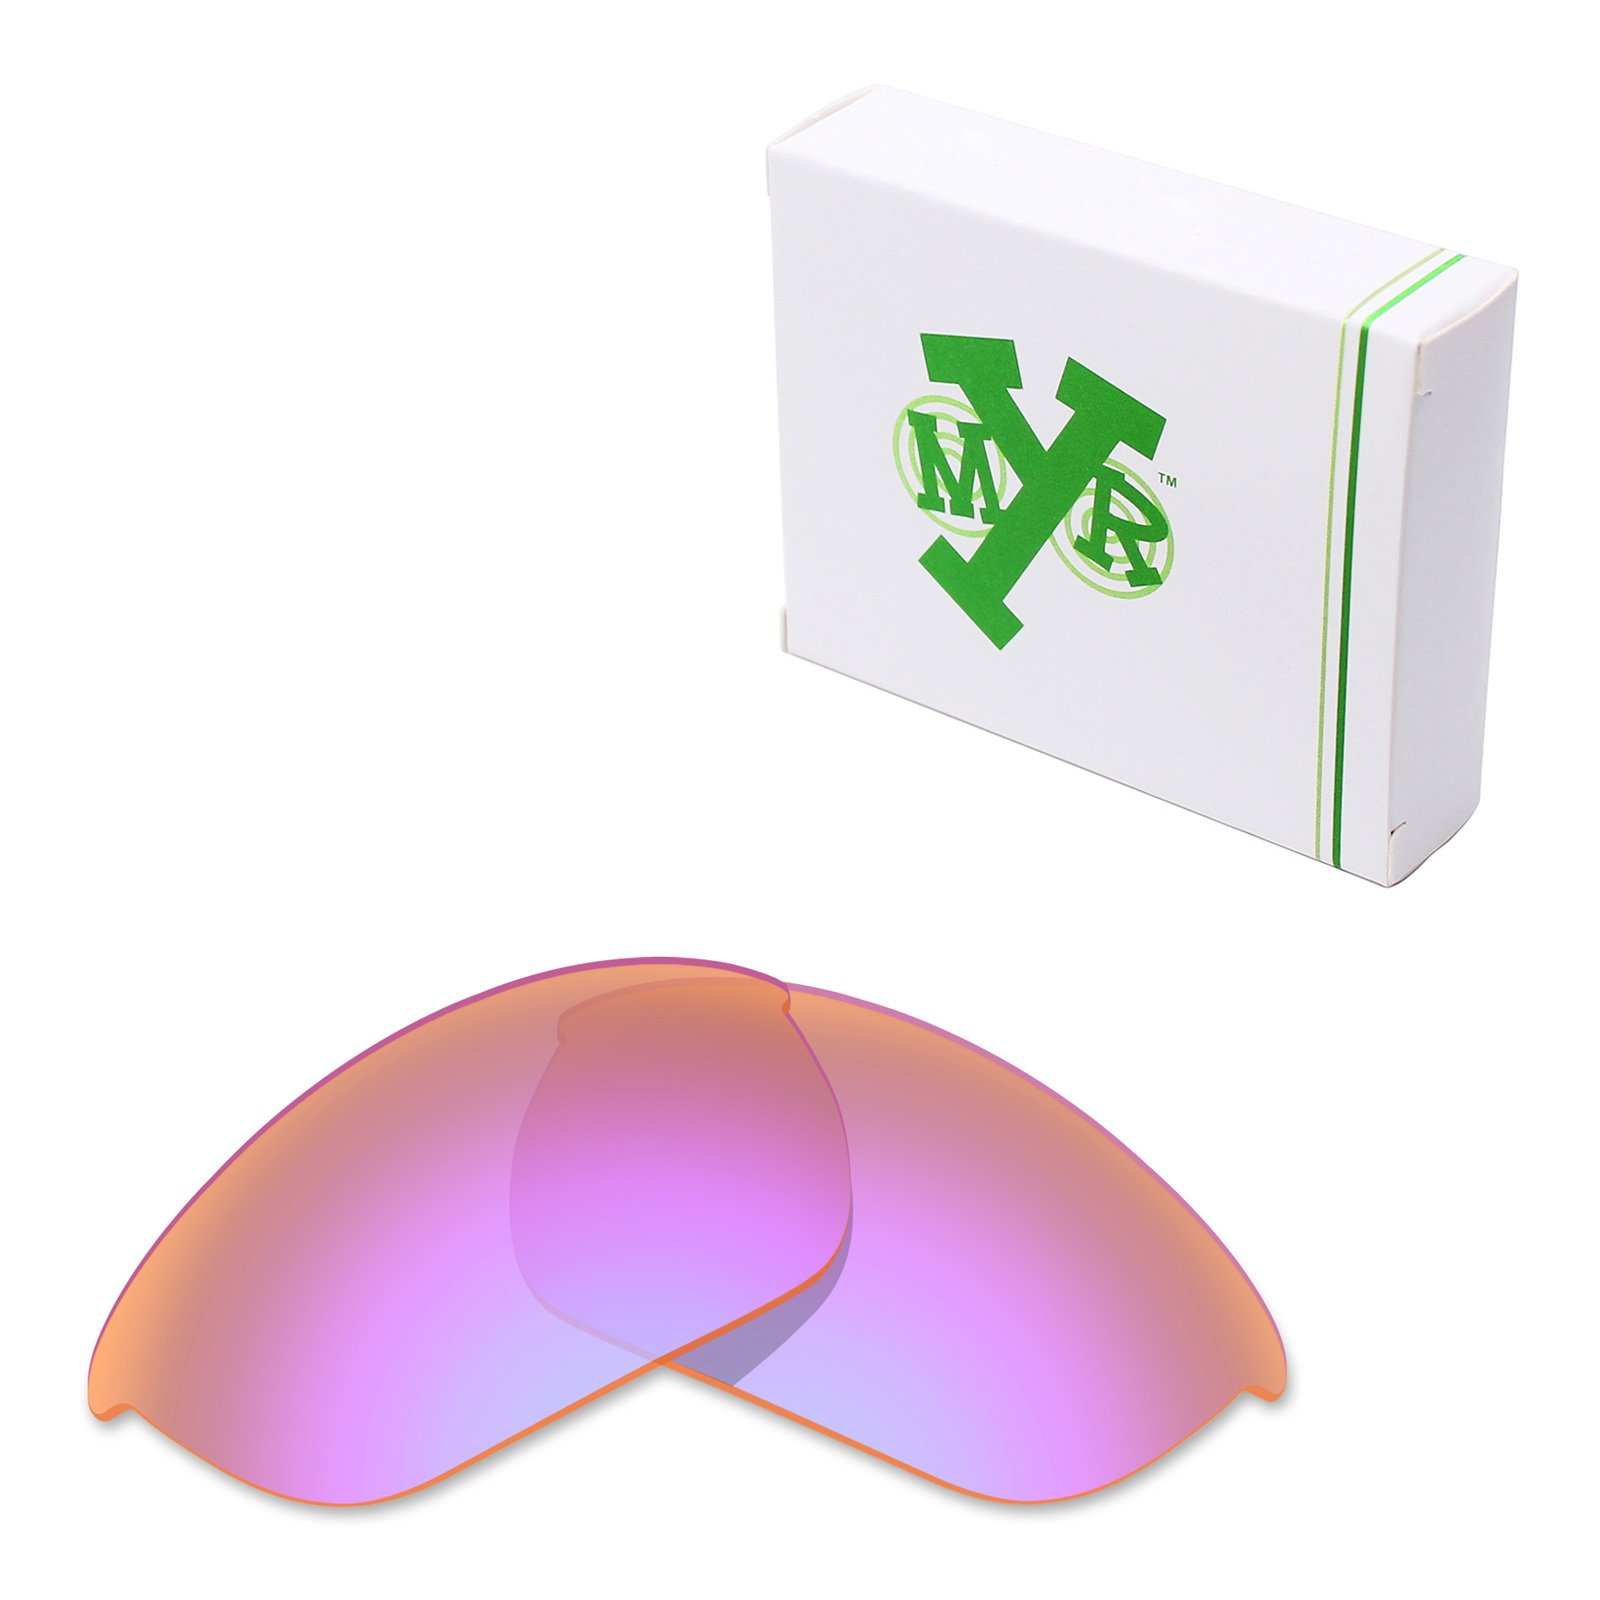 Mryok Polarized Replacement Lenses for Oakley Half Jacket 2.0 - Cobalt Rose